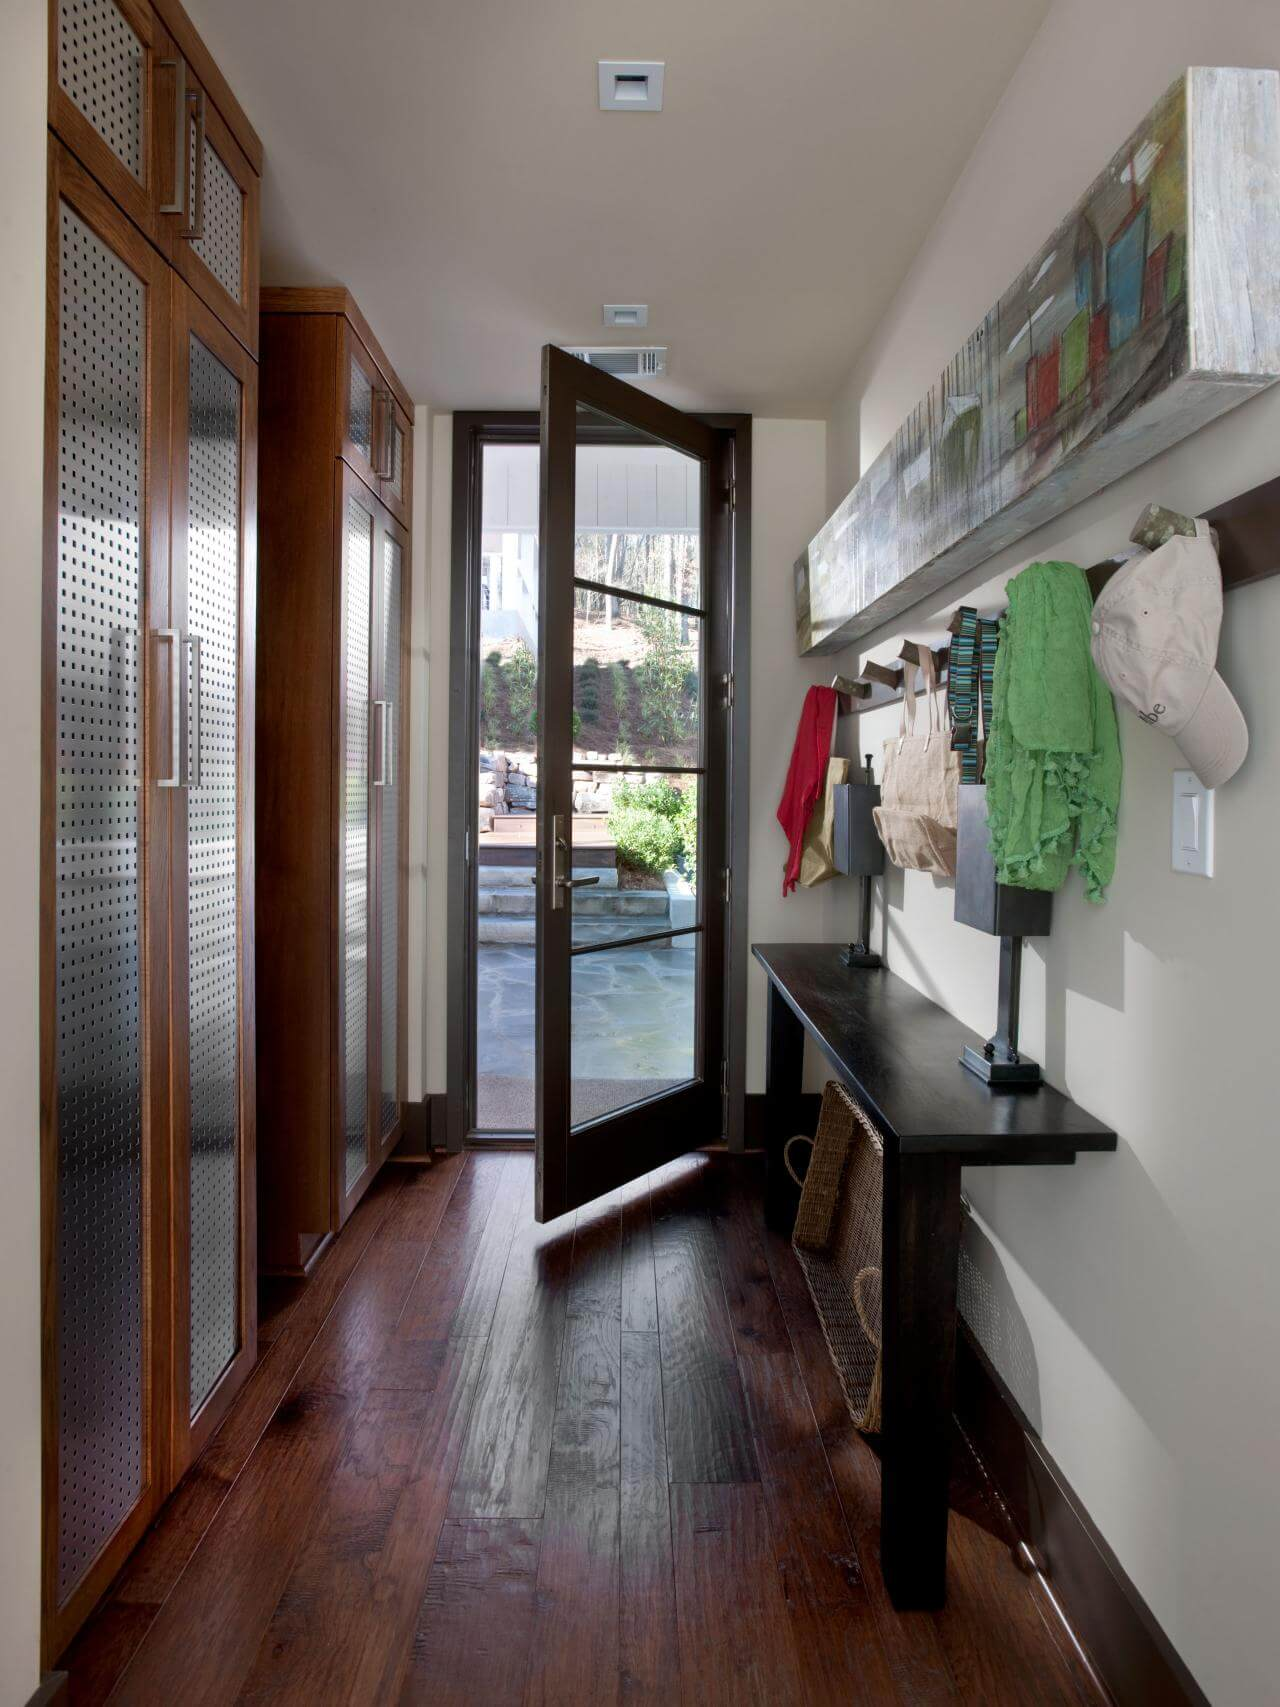 home plans with mudroom 45 superb mudroom entryway design ideas with benches and storage lockers pictures 6183